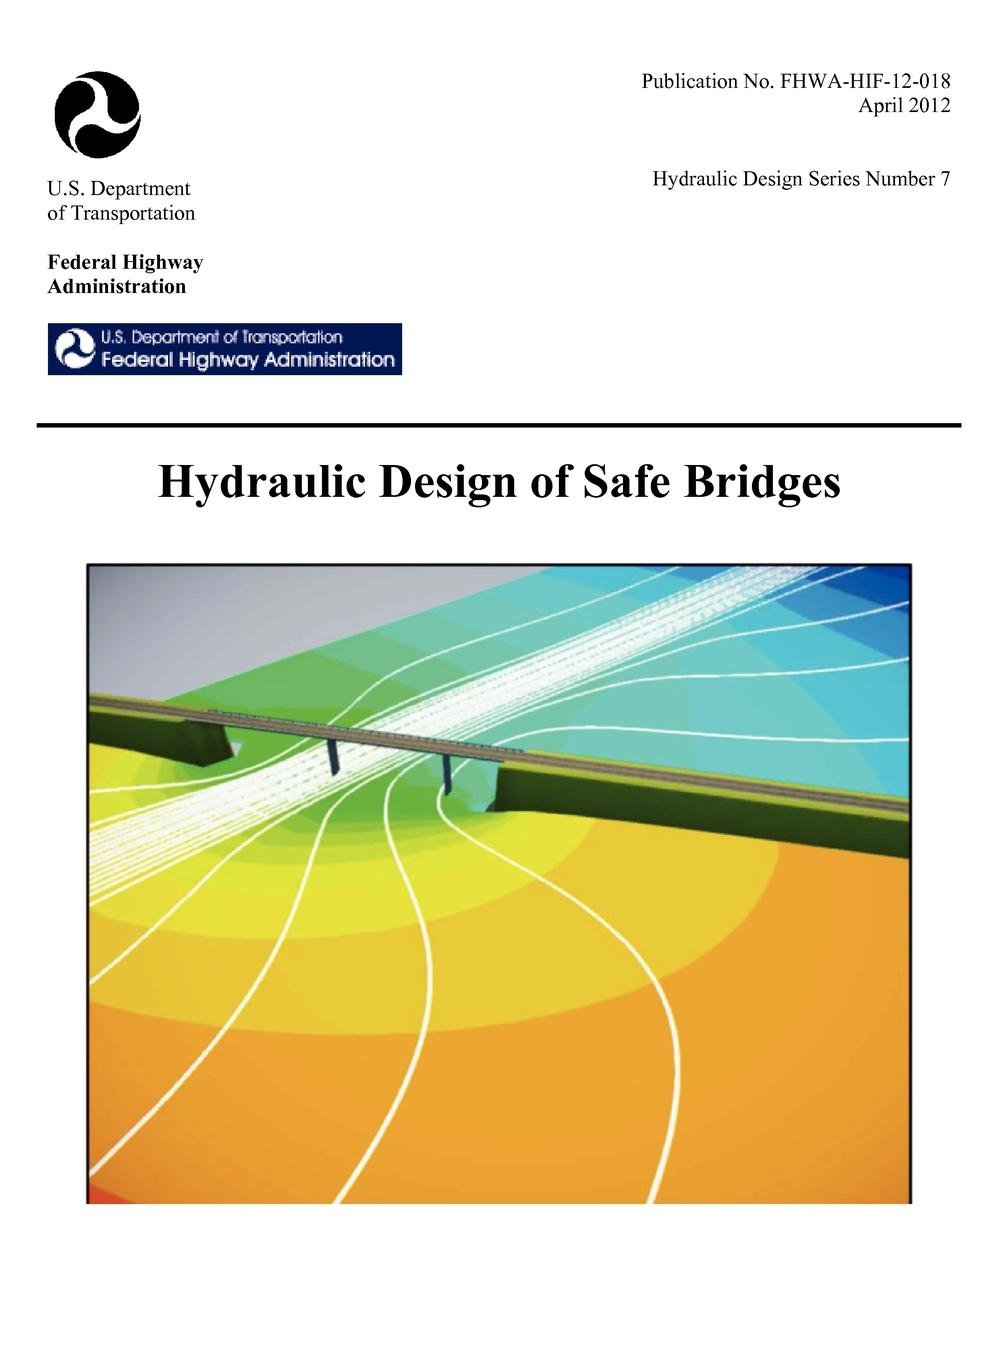 Download Hydraulic Design of Safe Bridges. Hydraulic Design Series Number 7. Fhwa-Hif-12-018. ebook